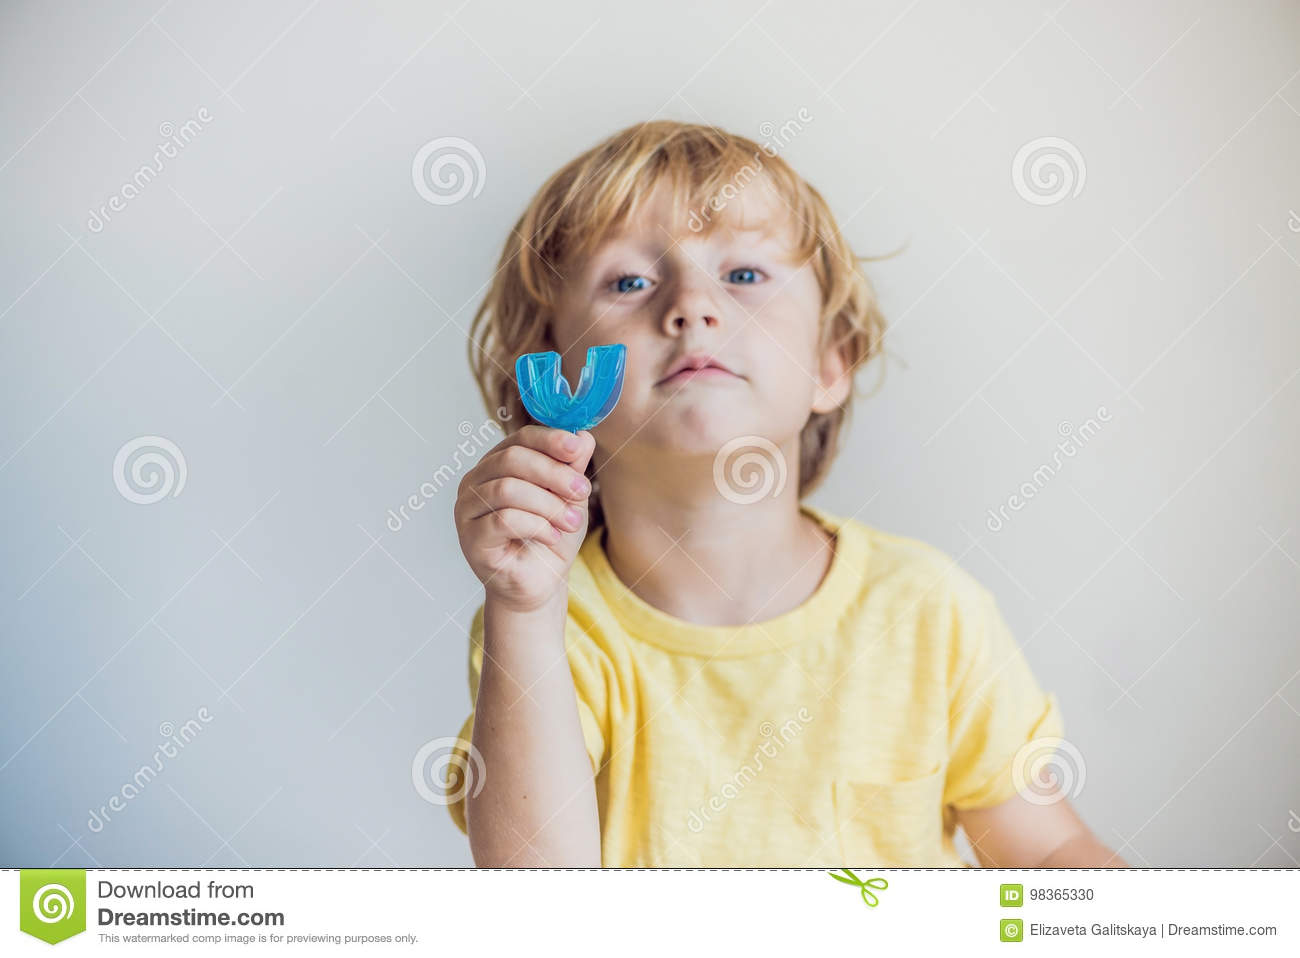 Three-year old boy shows myofunctional trainer to illuminate mouth breathing habit. Helps equalize the growing teeth and correct